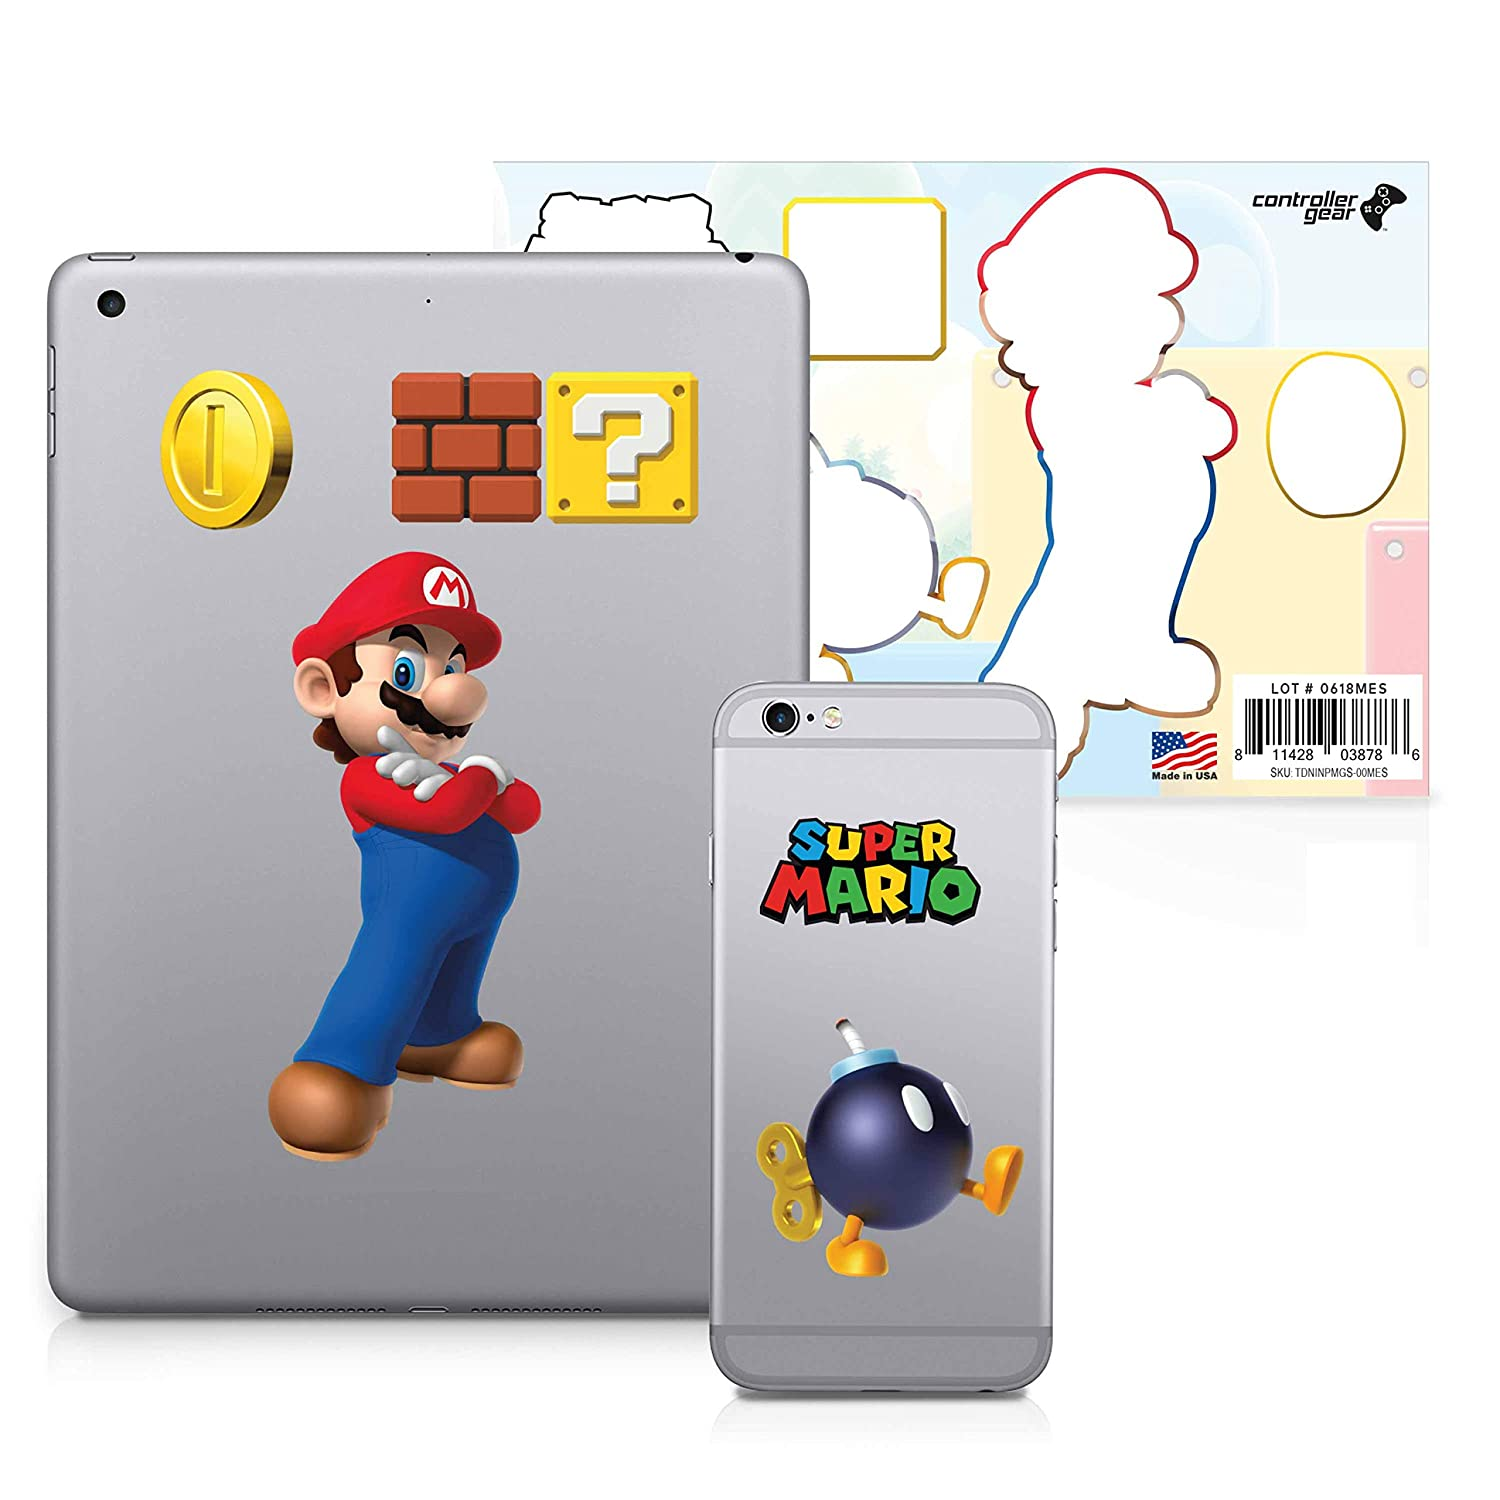 Super Mario, 6 Pack, Mario Tech Decals, Waterproof Stickers for Phone, Laptop, Water Bottle, Skateboard, Vinyl Stickers for Boys and Girls